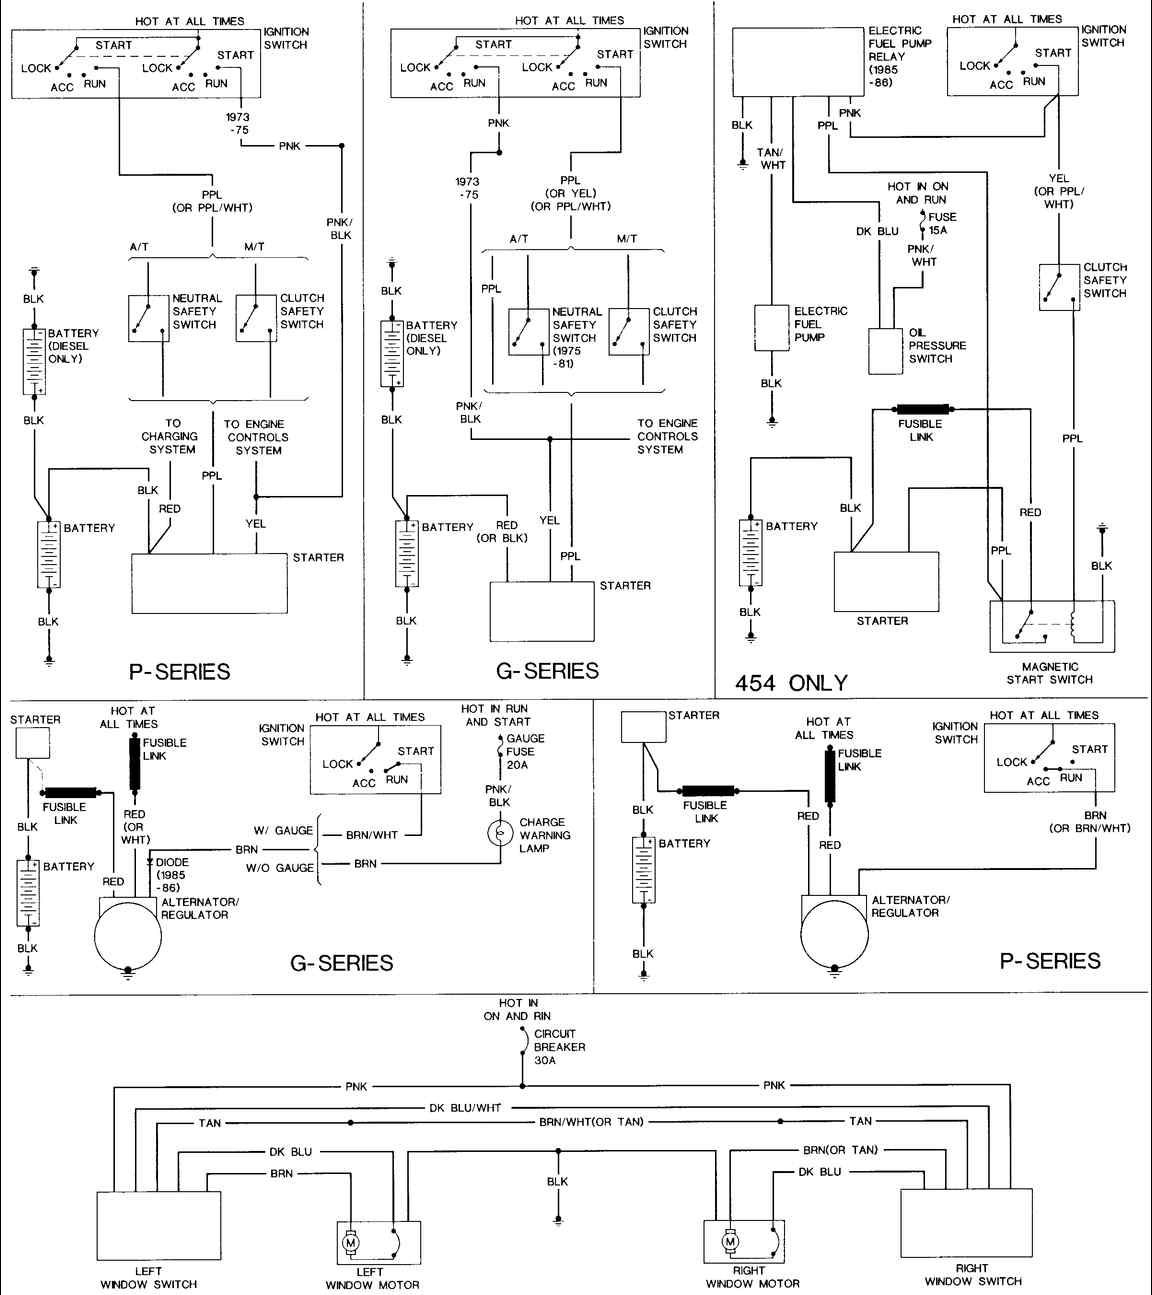 0c73623a181dc376dbb4777e2029d285 1984 chevy silverado 5 7 engine wiring diagram 1984 wiring  at reclaimingppi.co